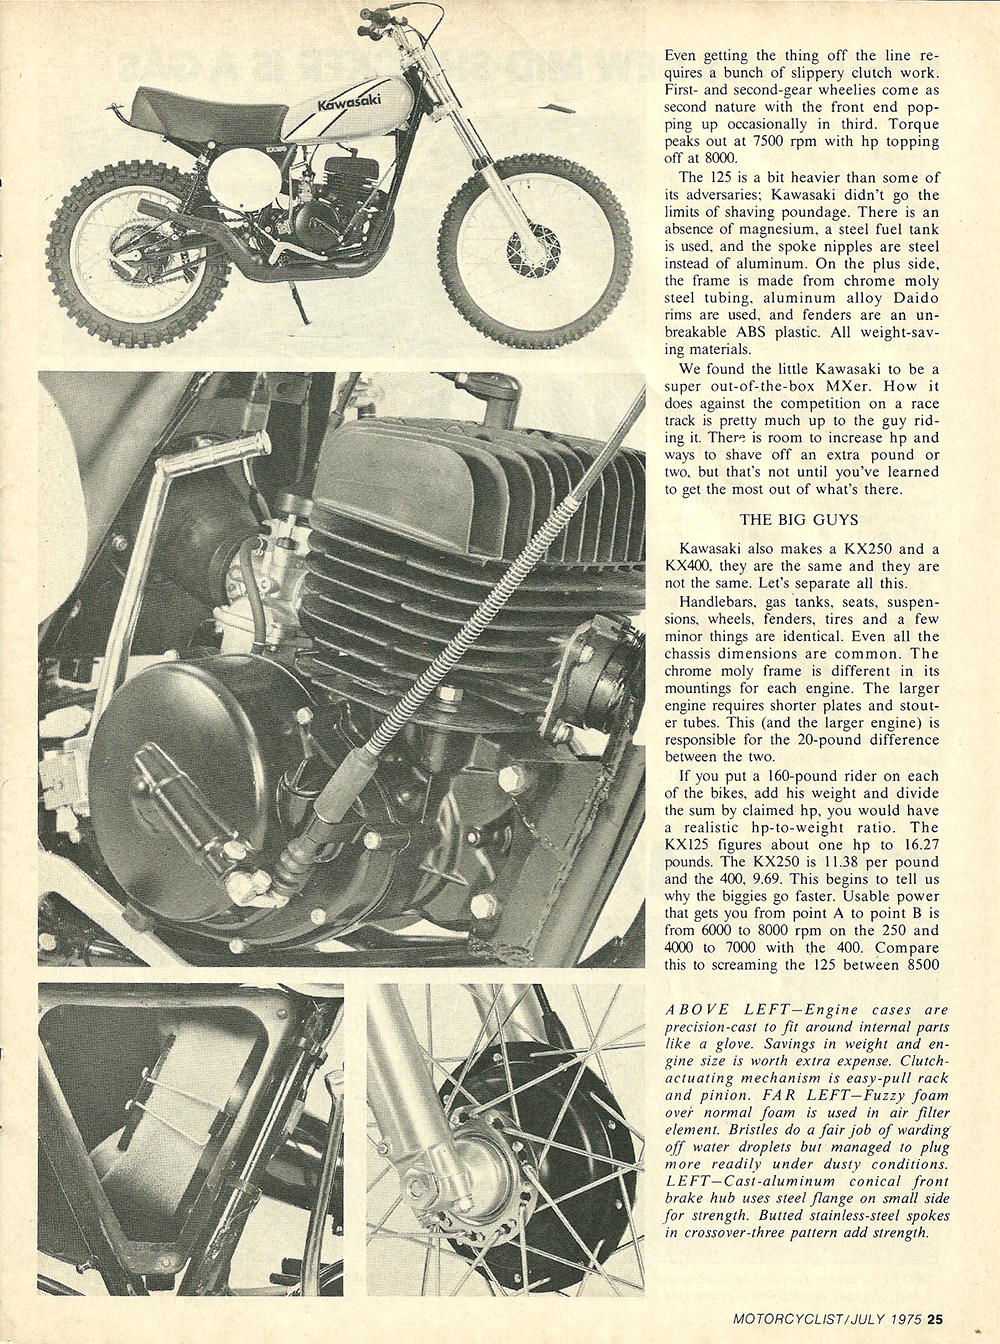 1975 Kawasaki KX 125 250 400 road test 6.jpg